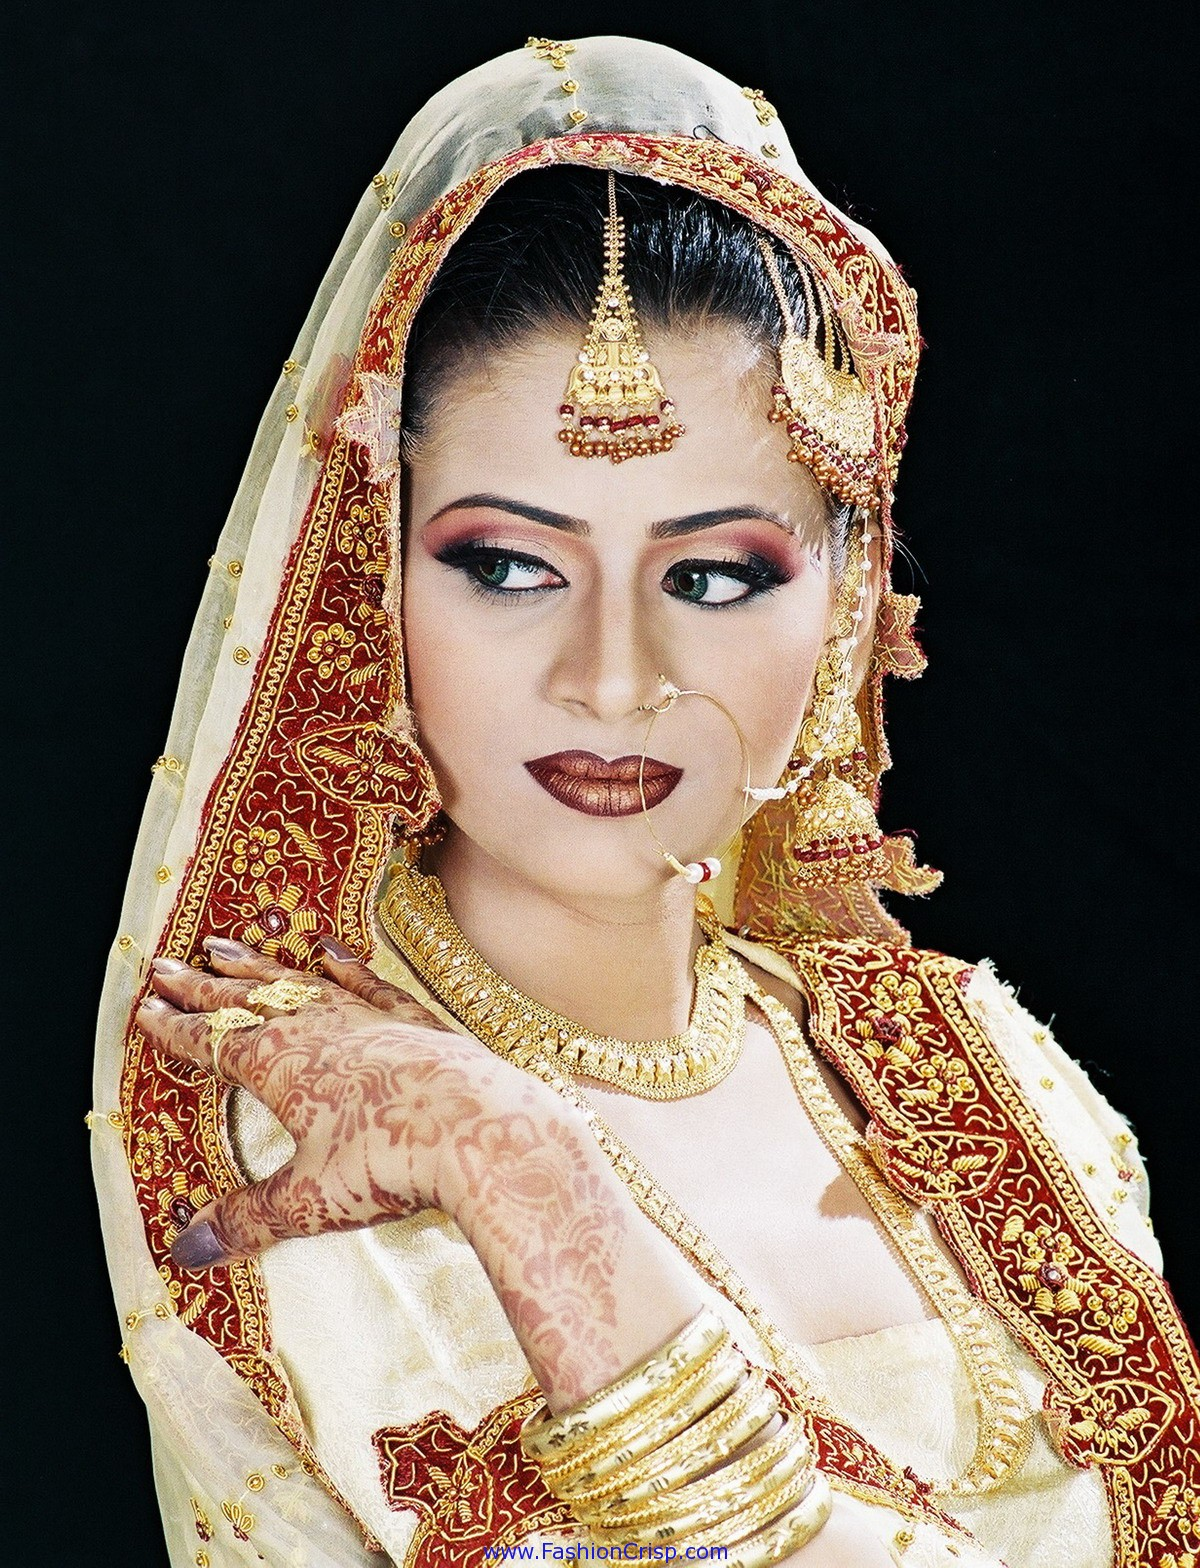 Farhana Jewellery Collection World March 2013 1 Set Perhiasan India Every Bride Dreams Of Her Wedding Day And Wants To Be At Best Appearance That Bridal Makeup Is Very Important Ceremony For